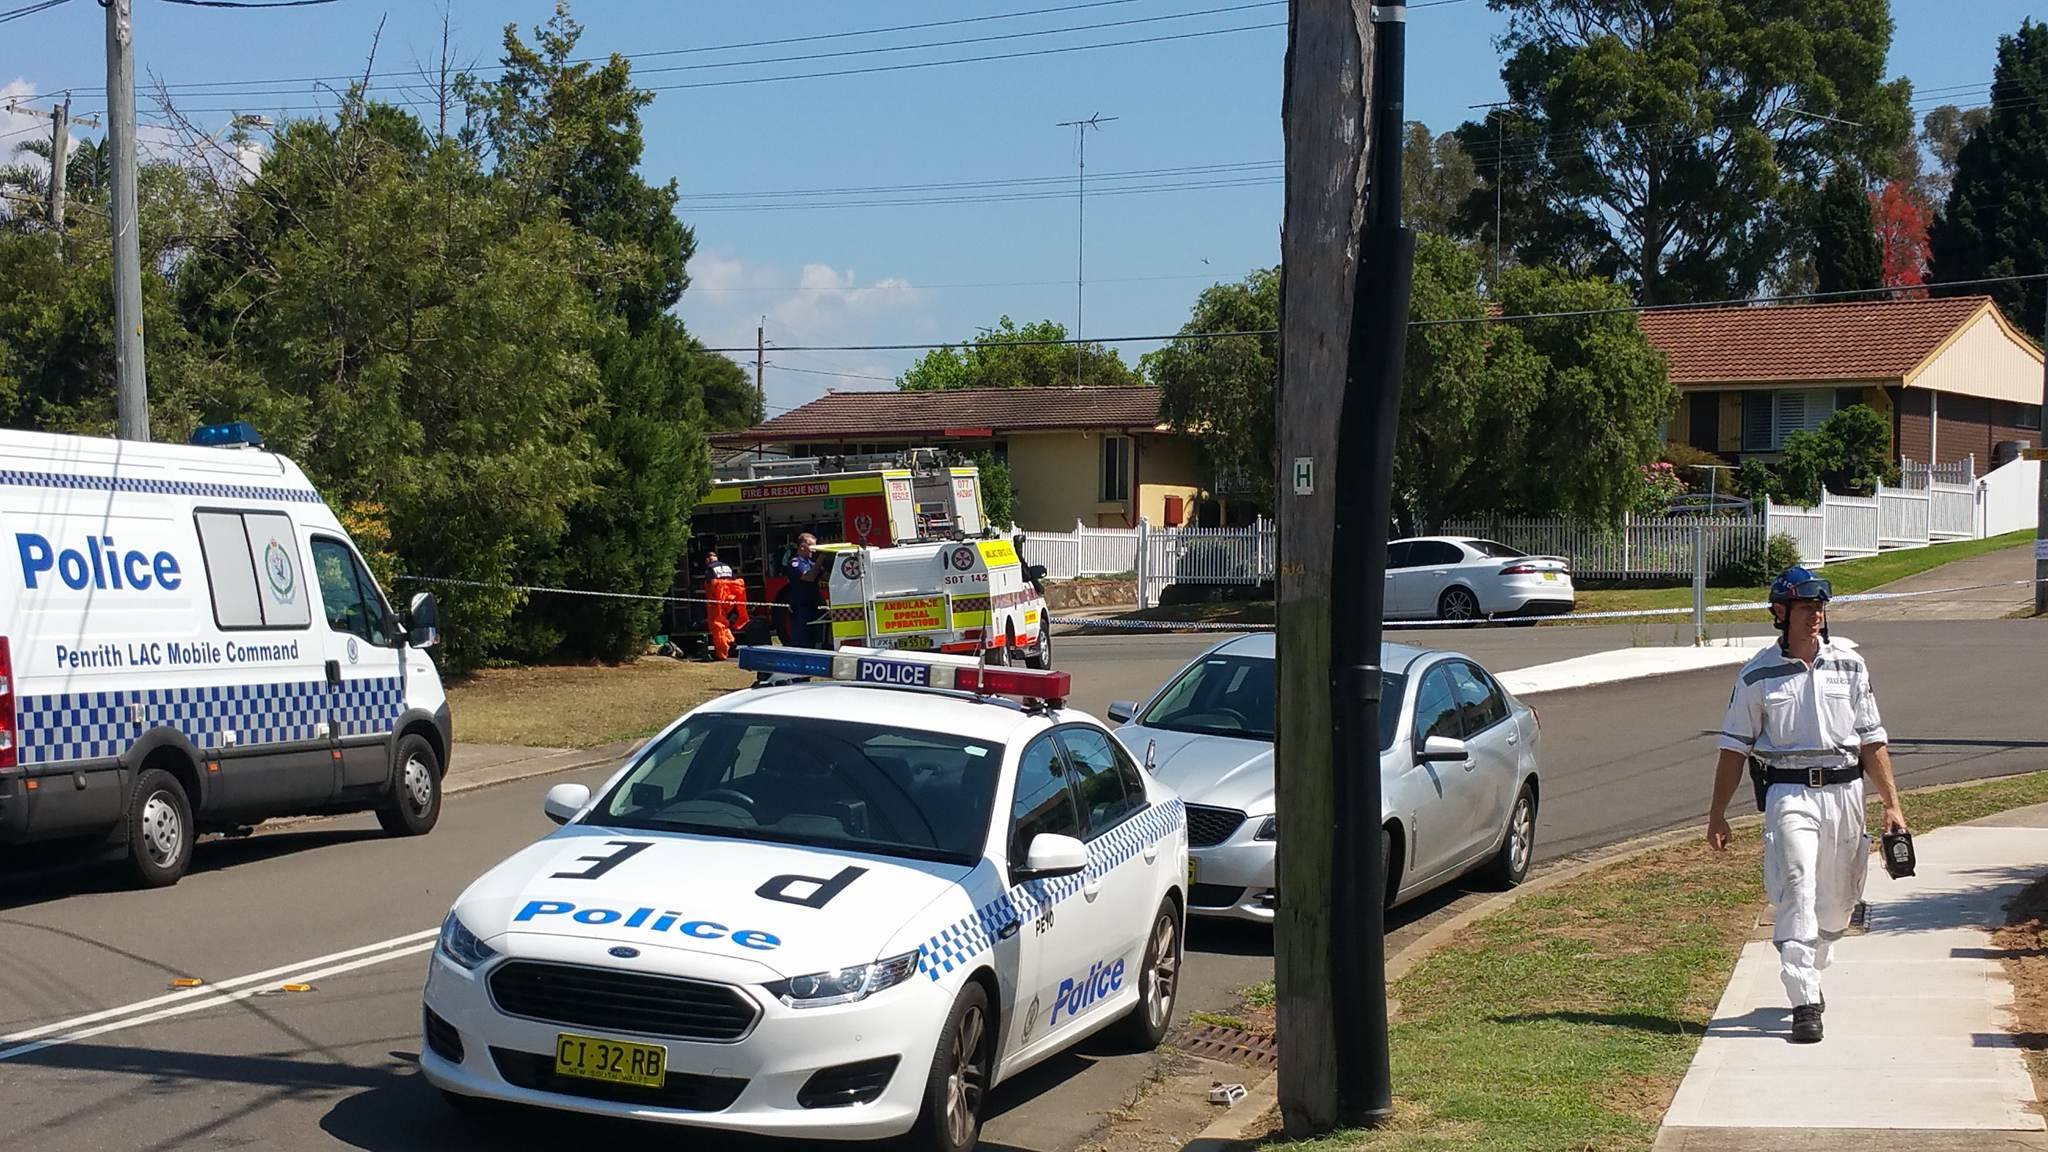 Police on the scene in South Penrith. Photo: Emily Newton